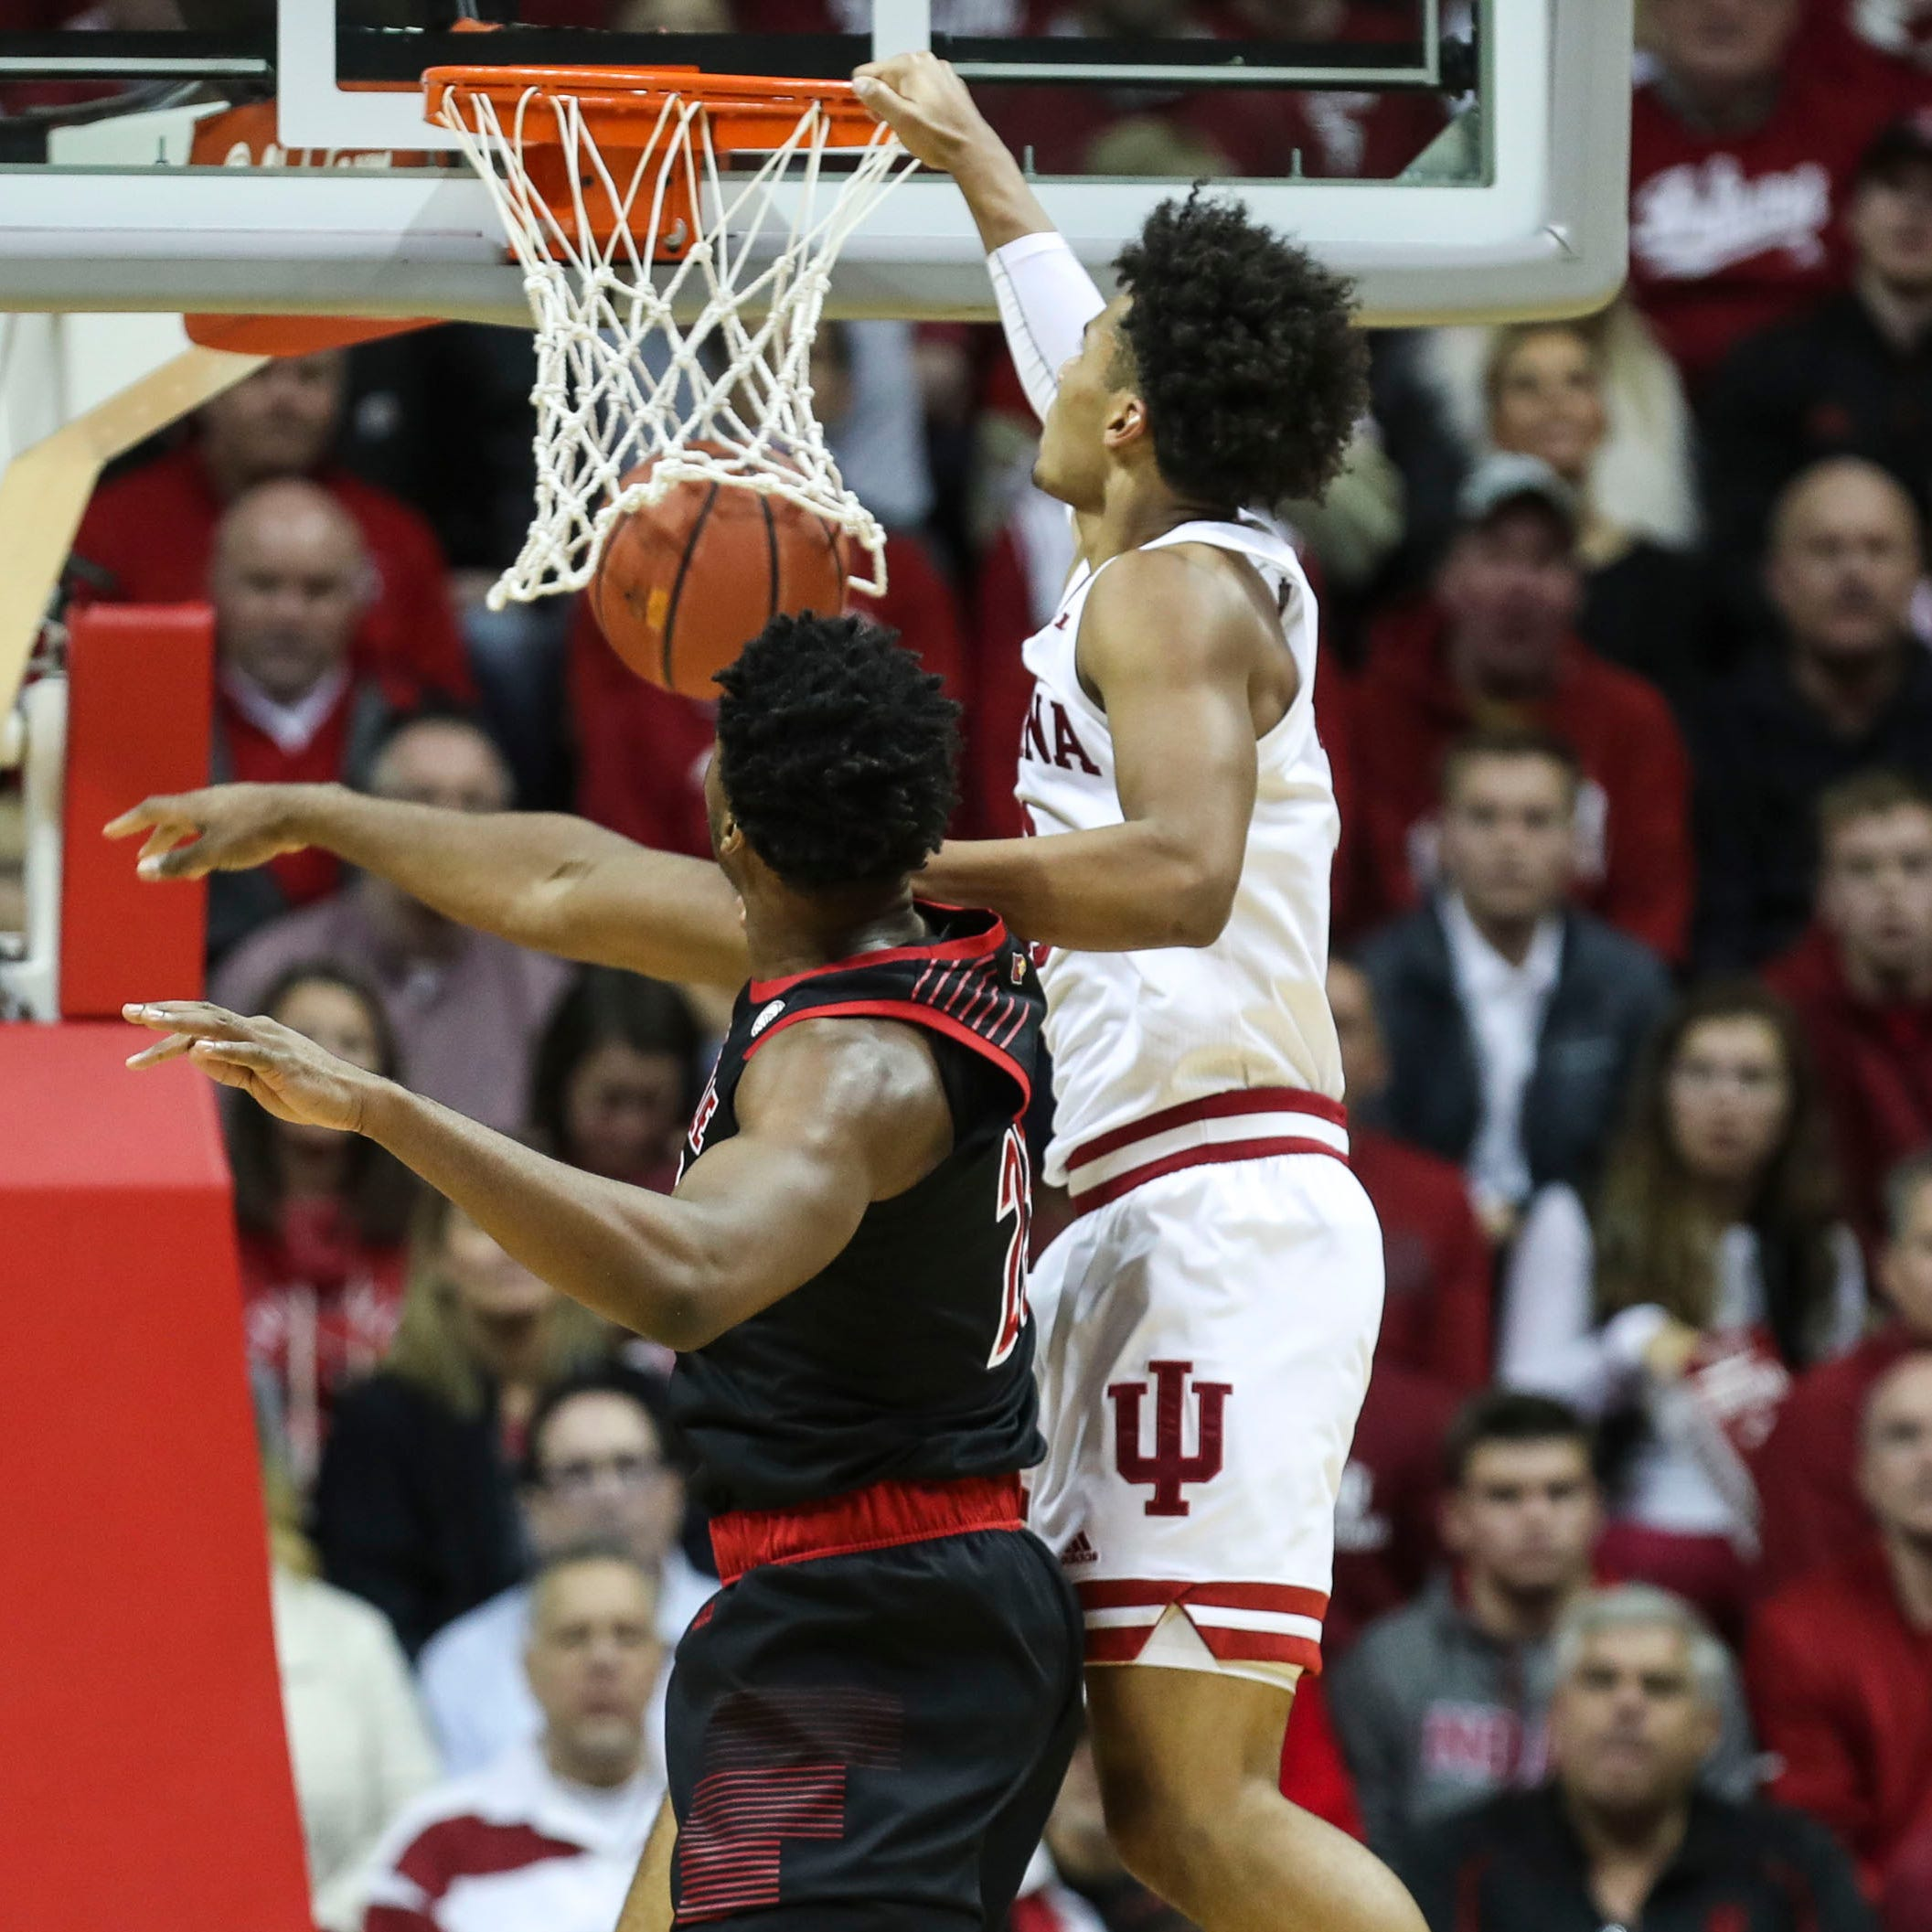 Louisville basketball's loss at Indiana leaves room for growth